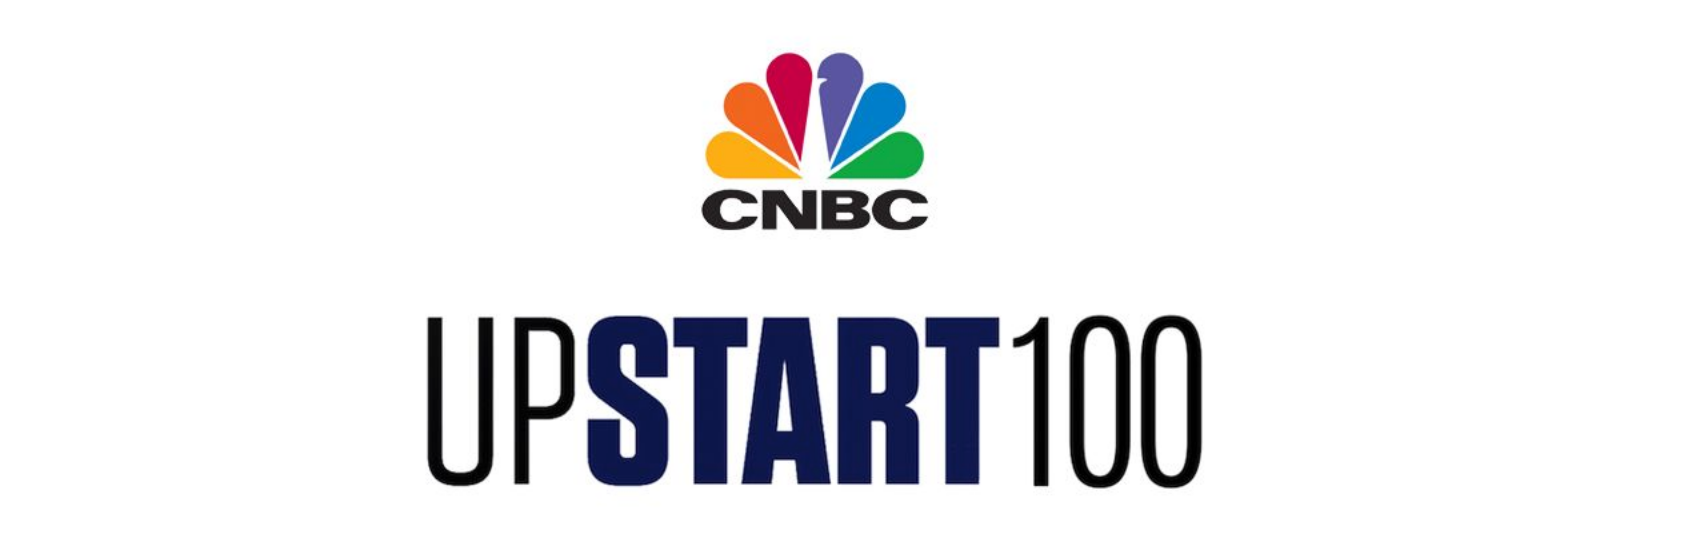 Lolli Named to CNBC's 2019 List of World's 100 Most Promising Start-ups to Watch 🏆